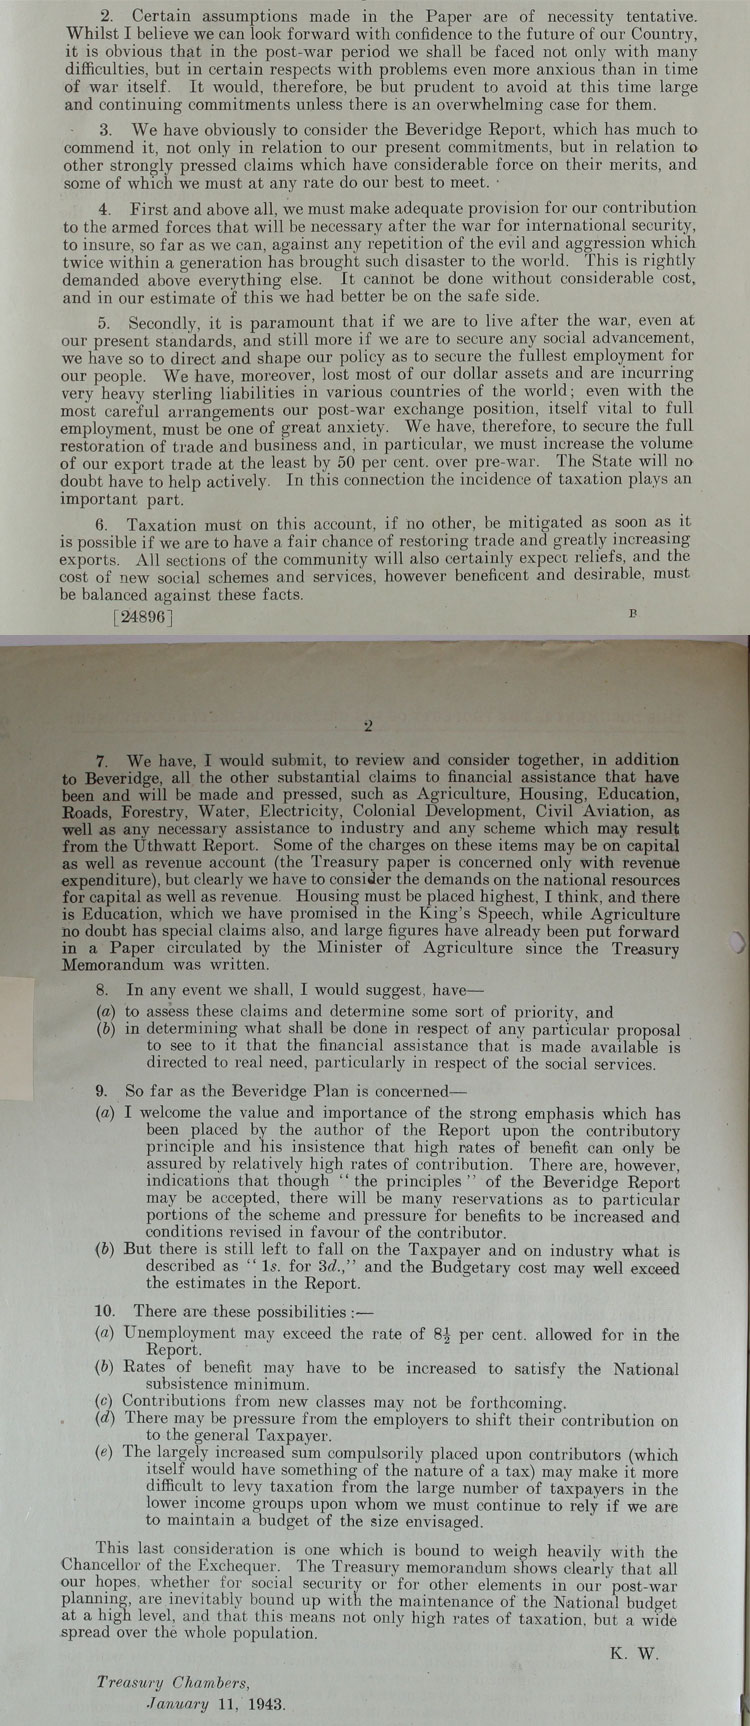 Memorandum from the Conservative Chancellor of the Exchequer, Kingsley Wood on the financial aspects of the social security plan, 11th January, 1943 (CAB 65/33)